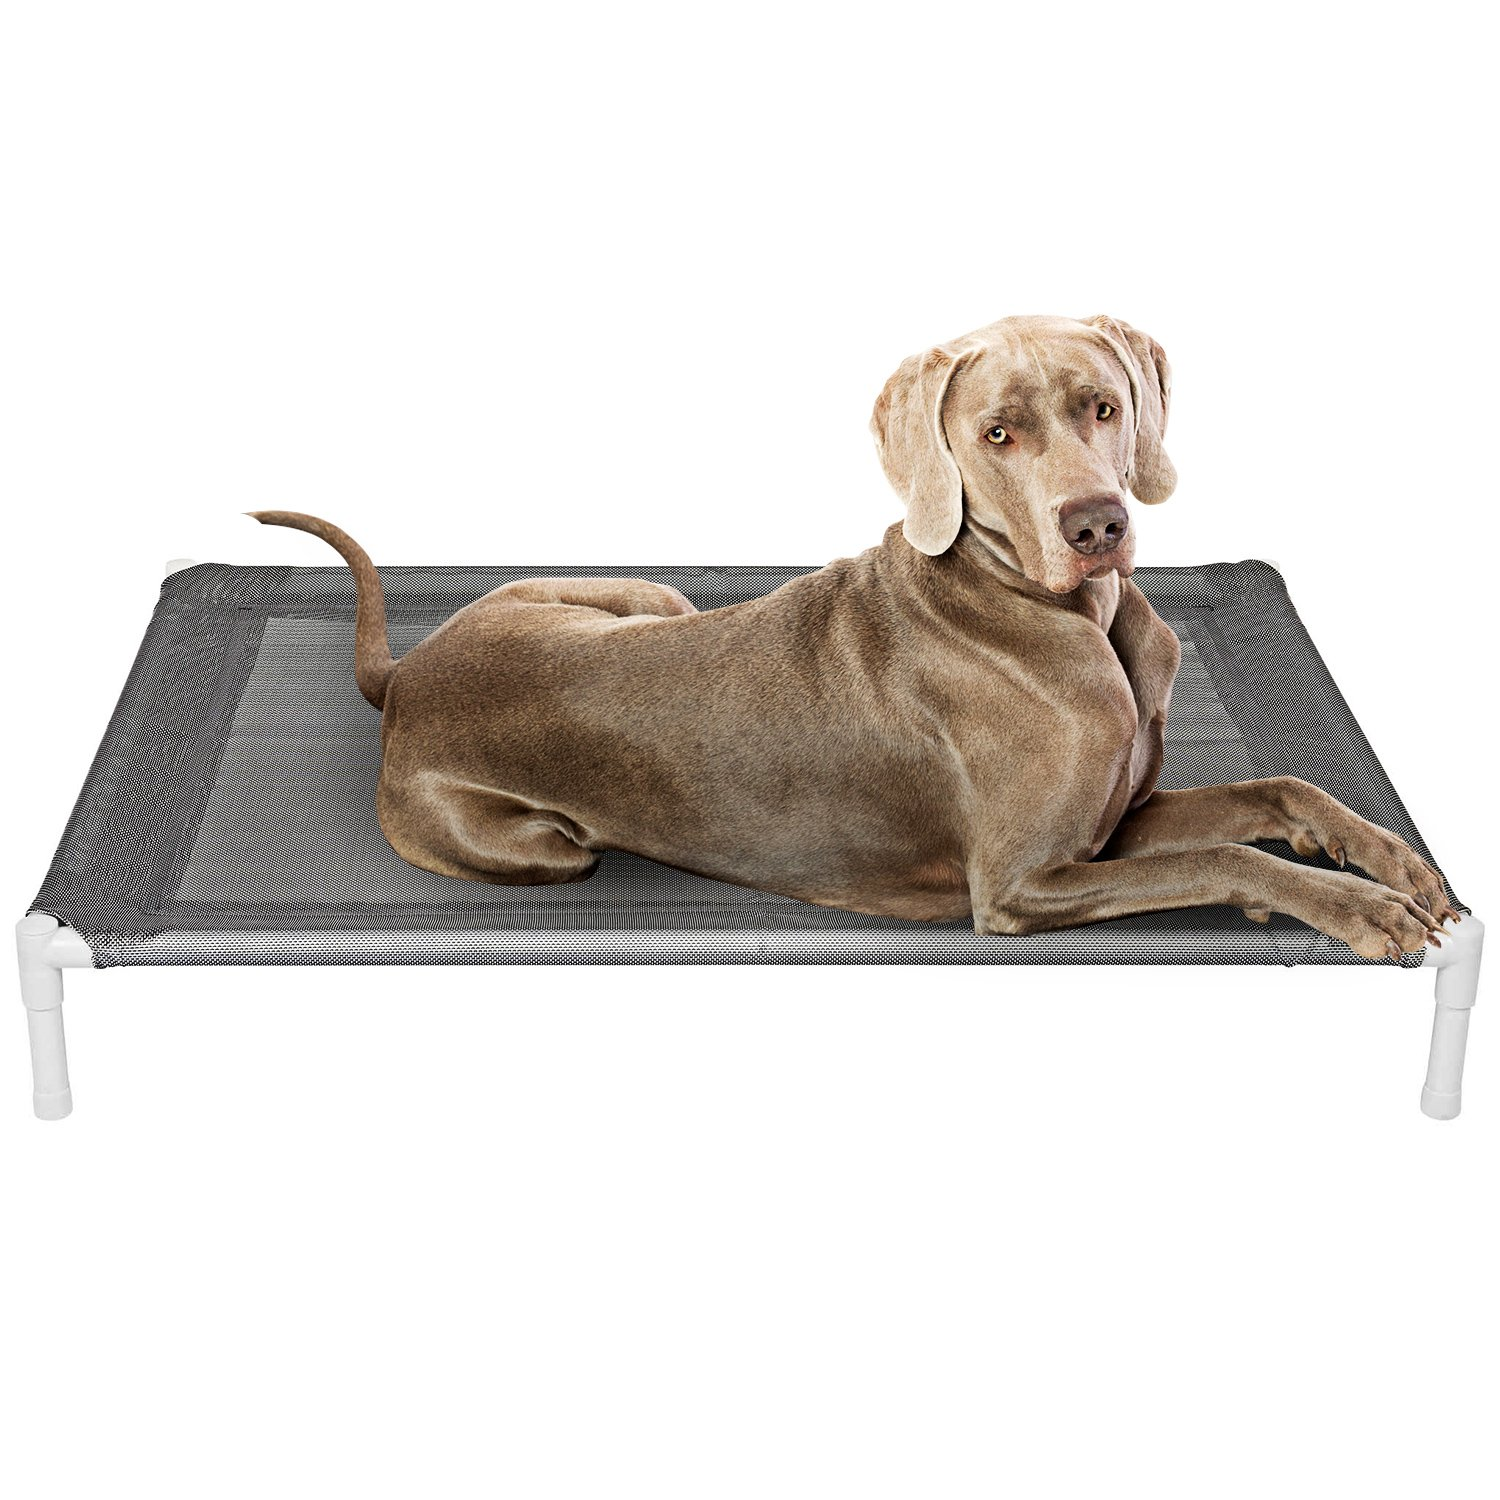 Elevated Cooling Dog Bed, Knitted Fabric Pet Cot, Portable (Large) by Animals Favorite (Image #1)